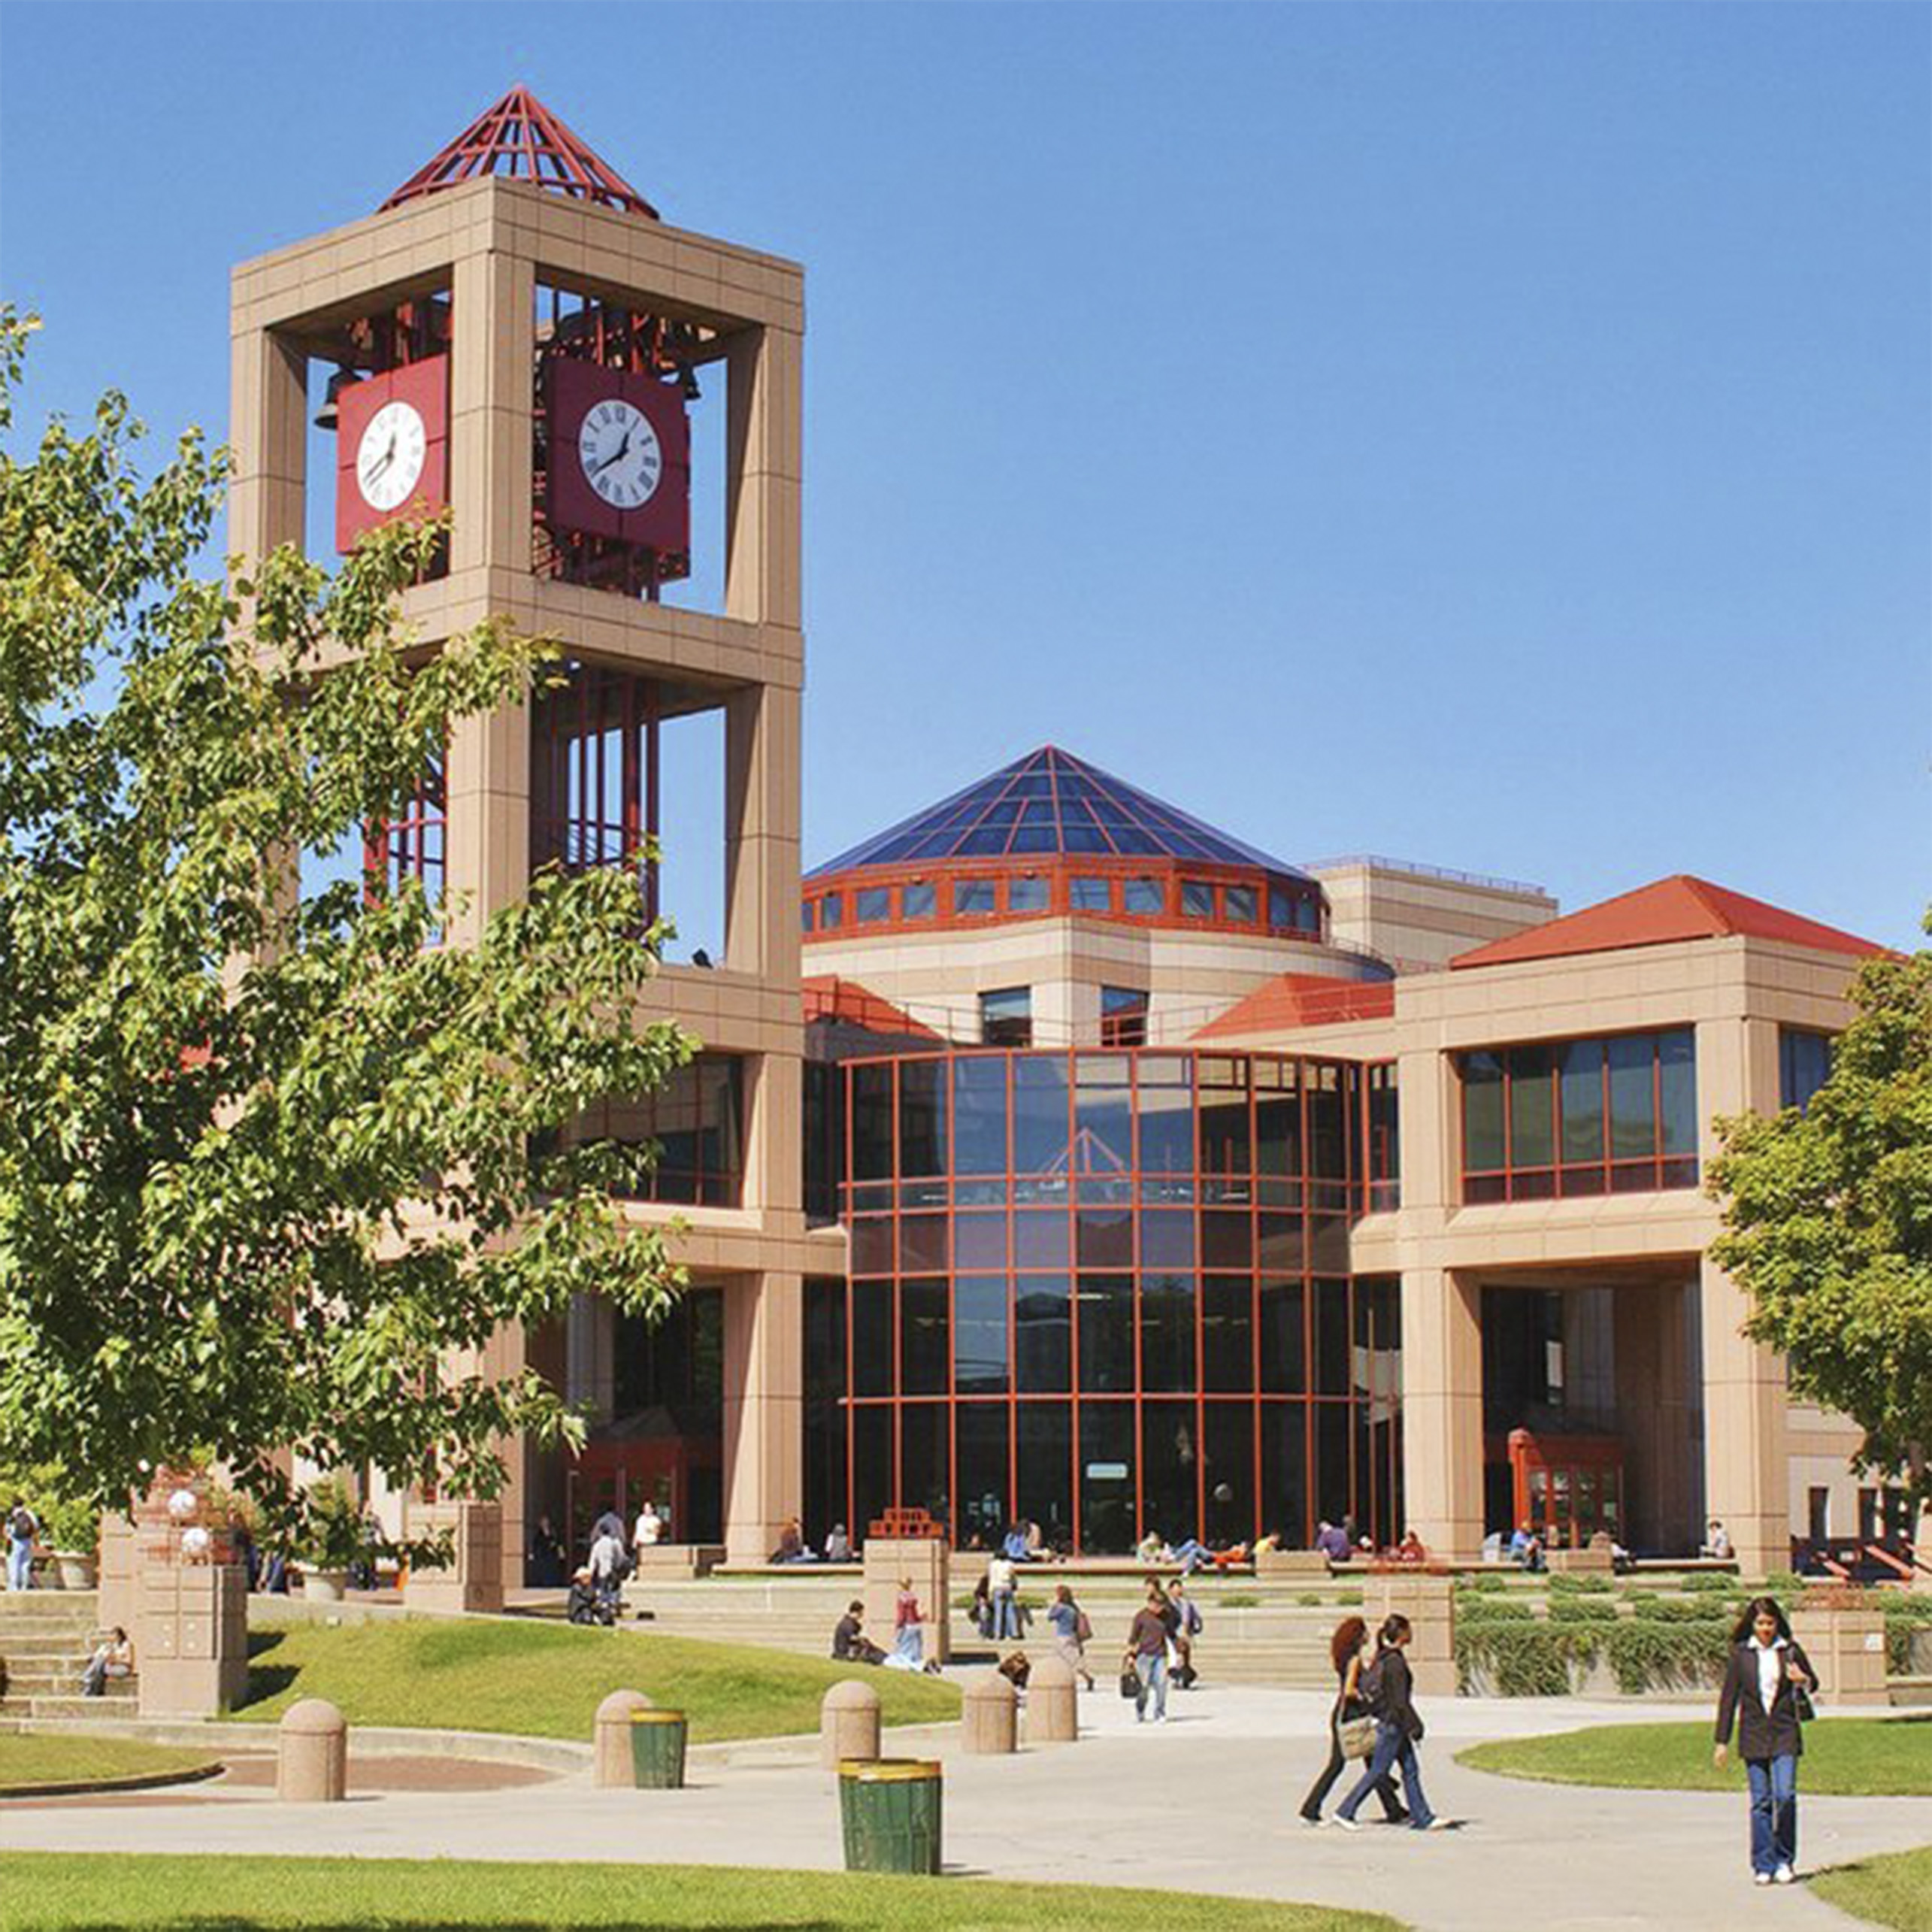 Image of Queens College's Clock Tower